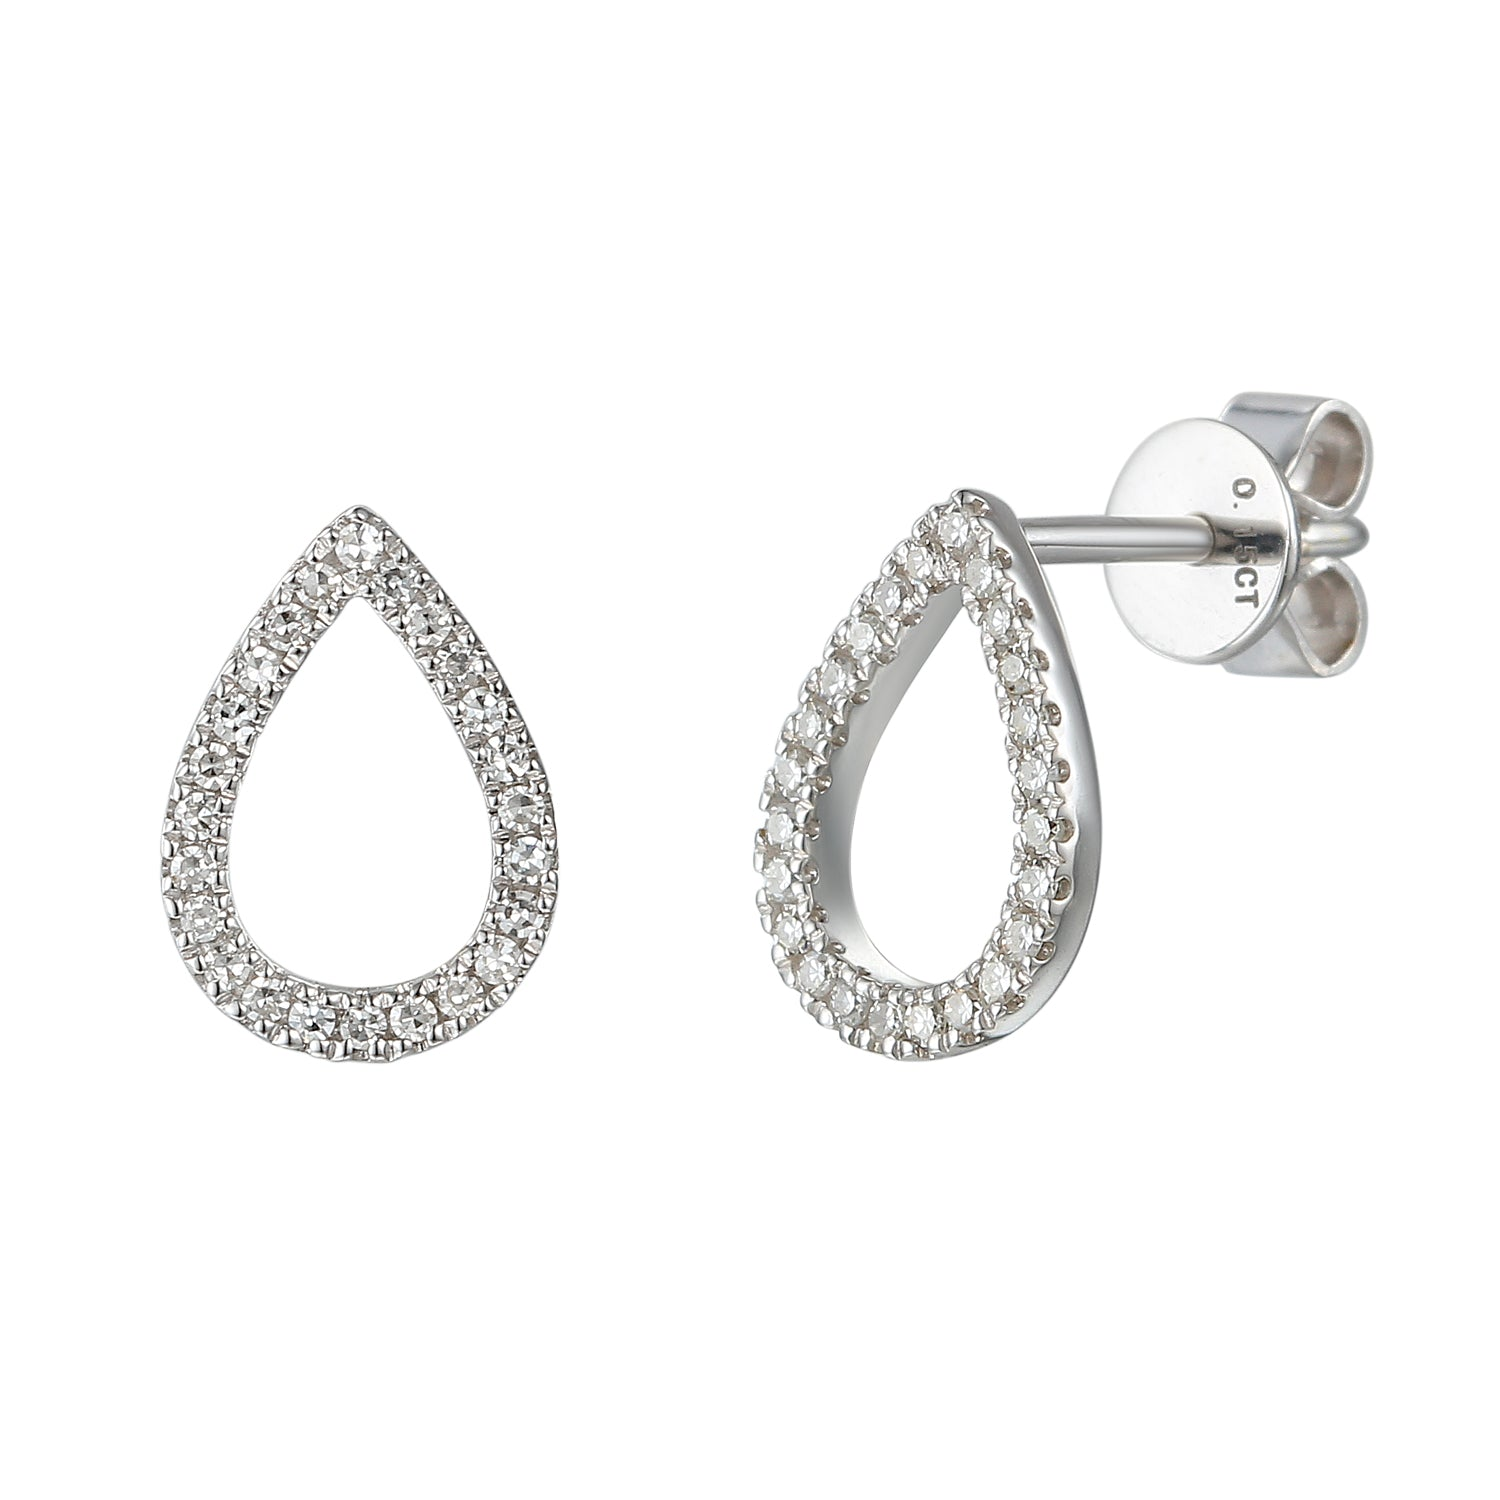 dangle collection htm f shaped earring diamond jewelry stud earrings